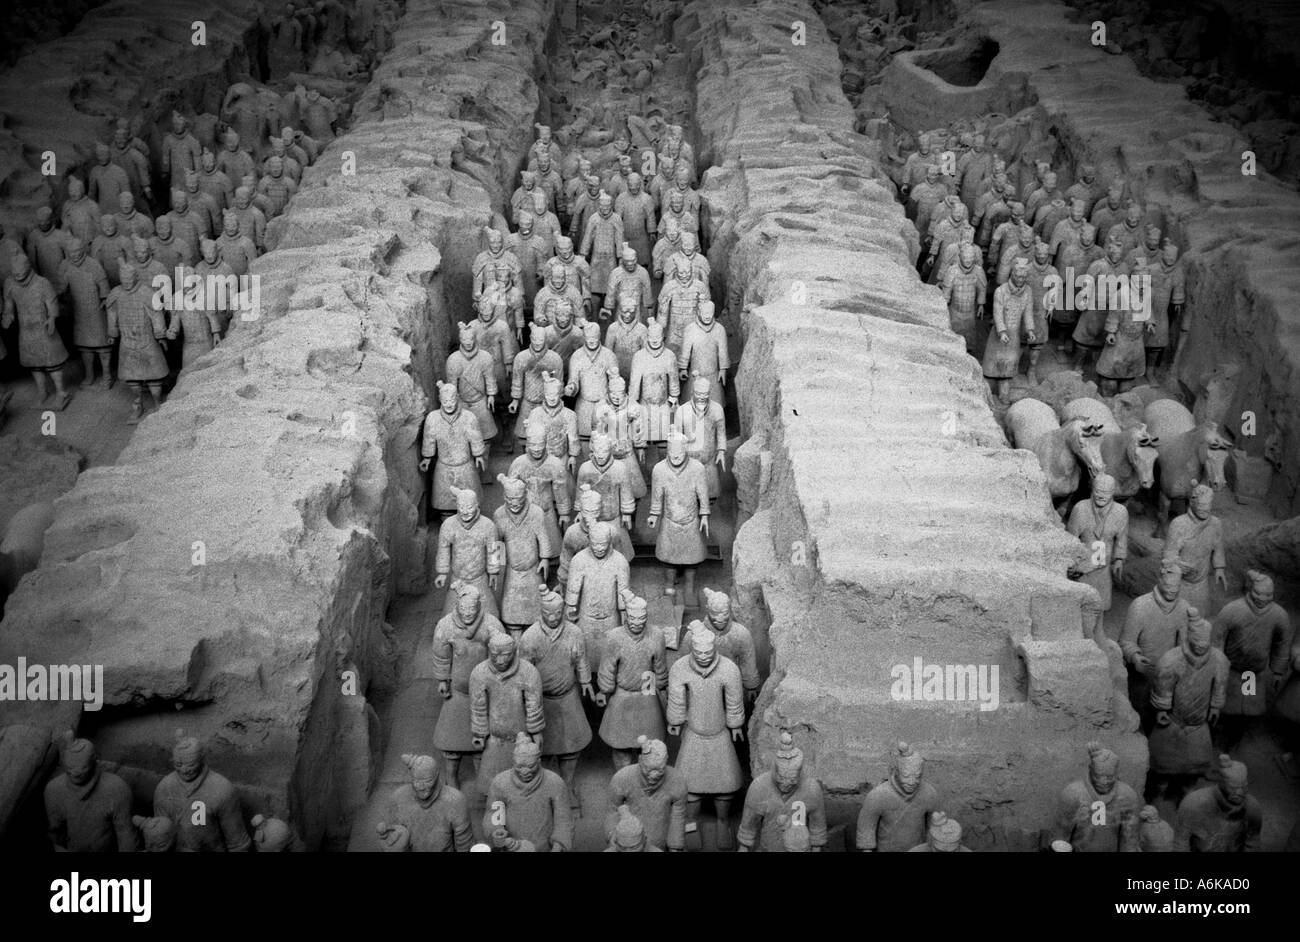 Army of Terracotta Warriors & Horses Xi'an Xian UNESCO World Heritage Site China Shaanxi Chinese Asian Asiatic Asia - Stock Image